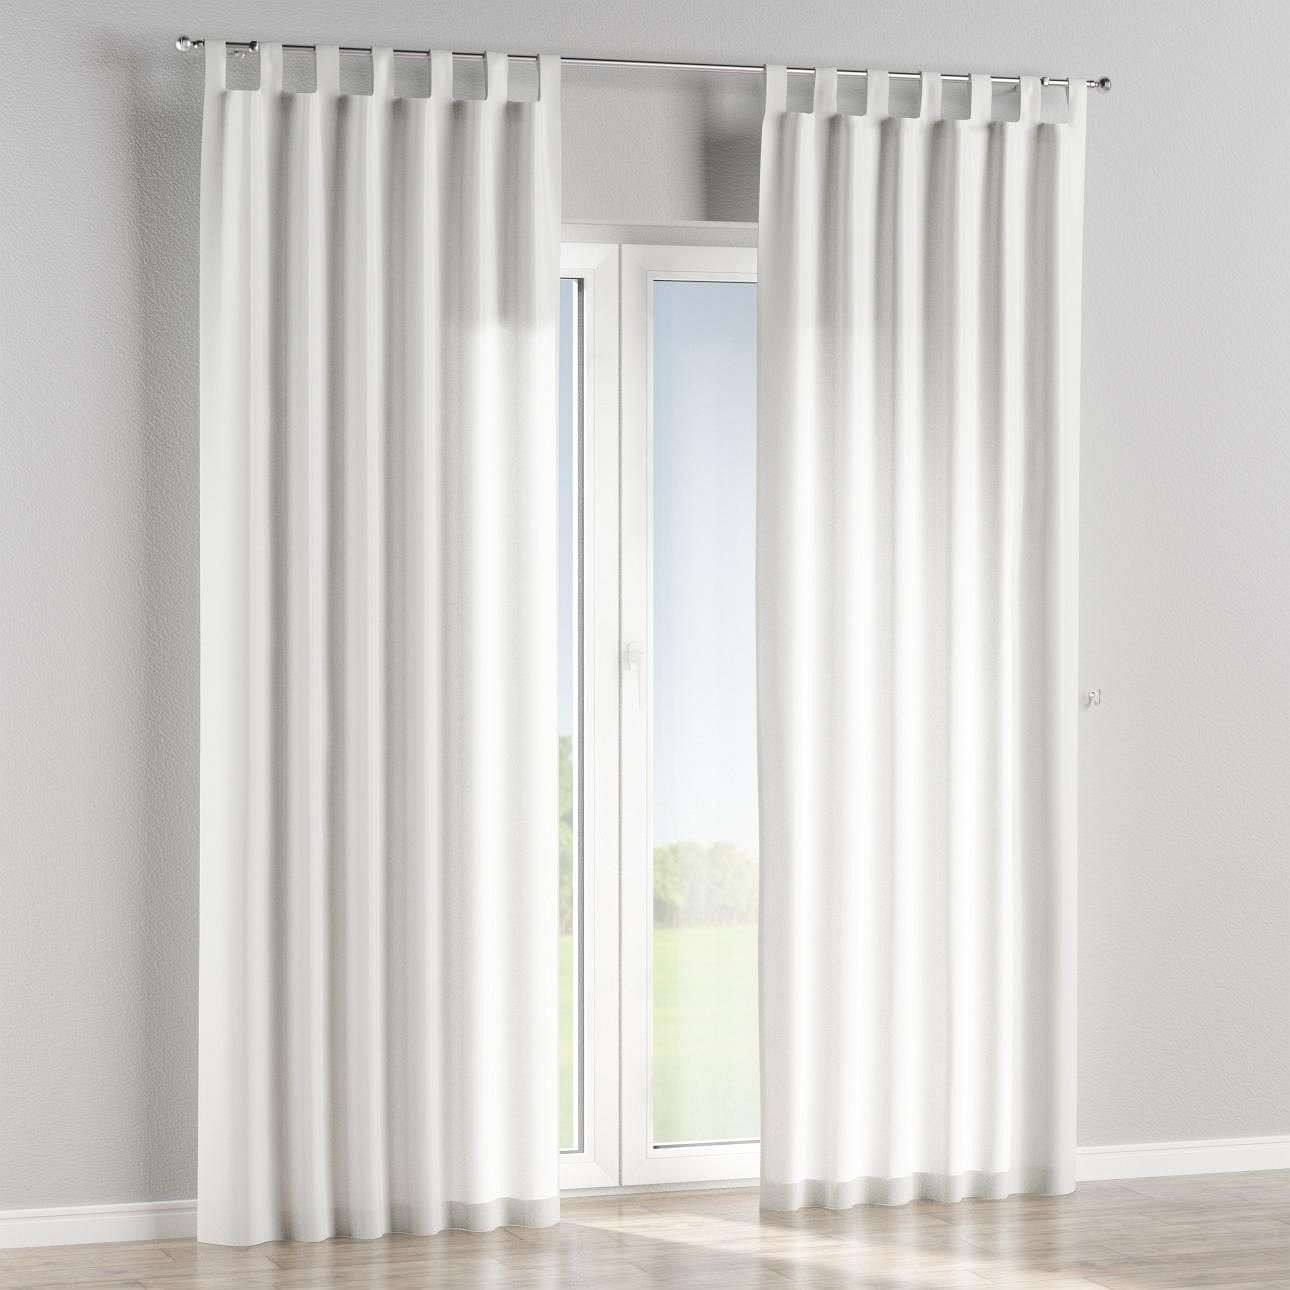 Tab top curtains in collection SALE, fabric: 114-92